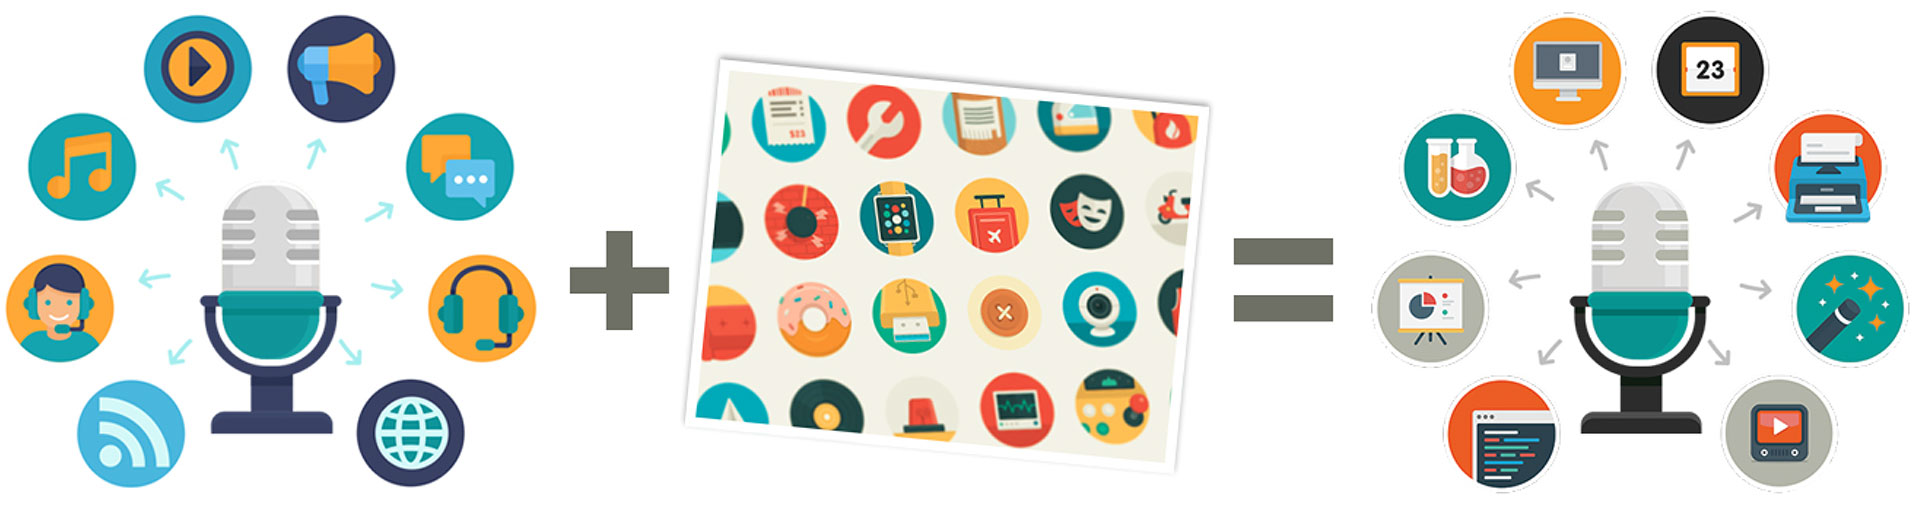 Customize stock illustrations with an icon set.